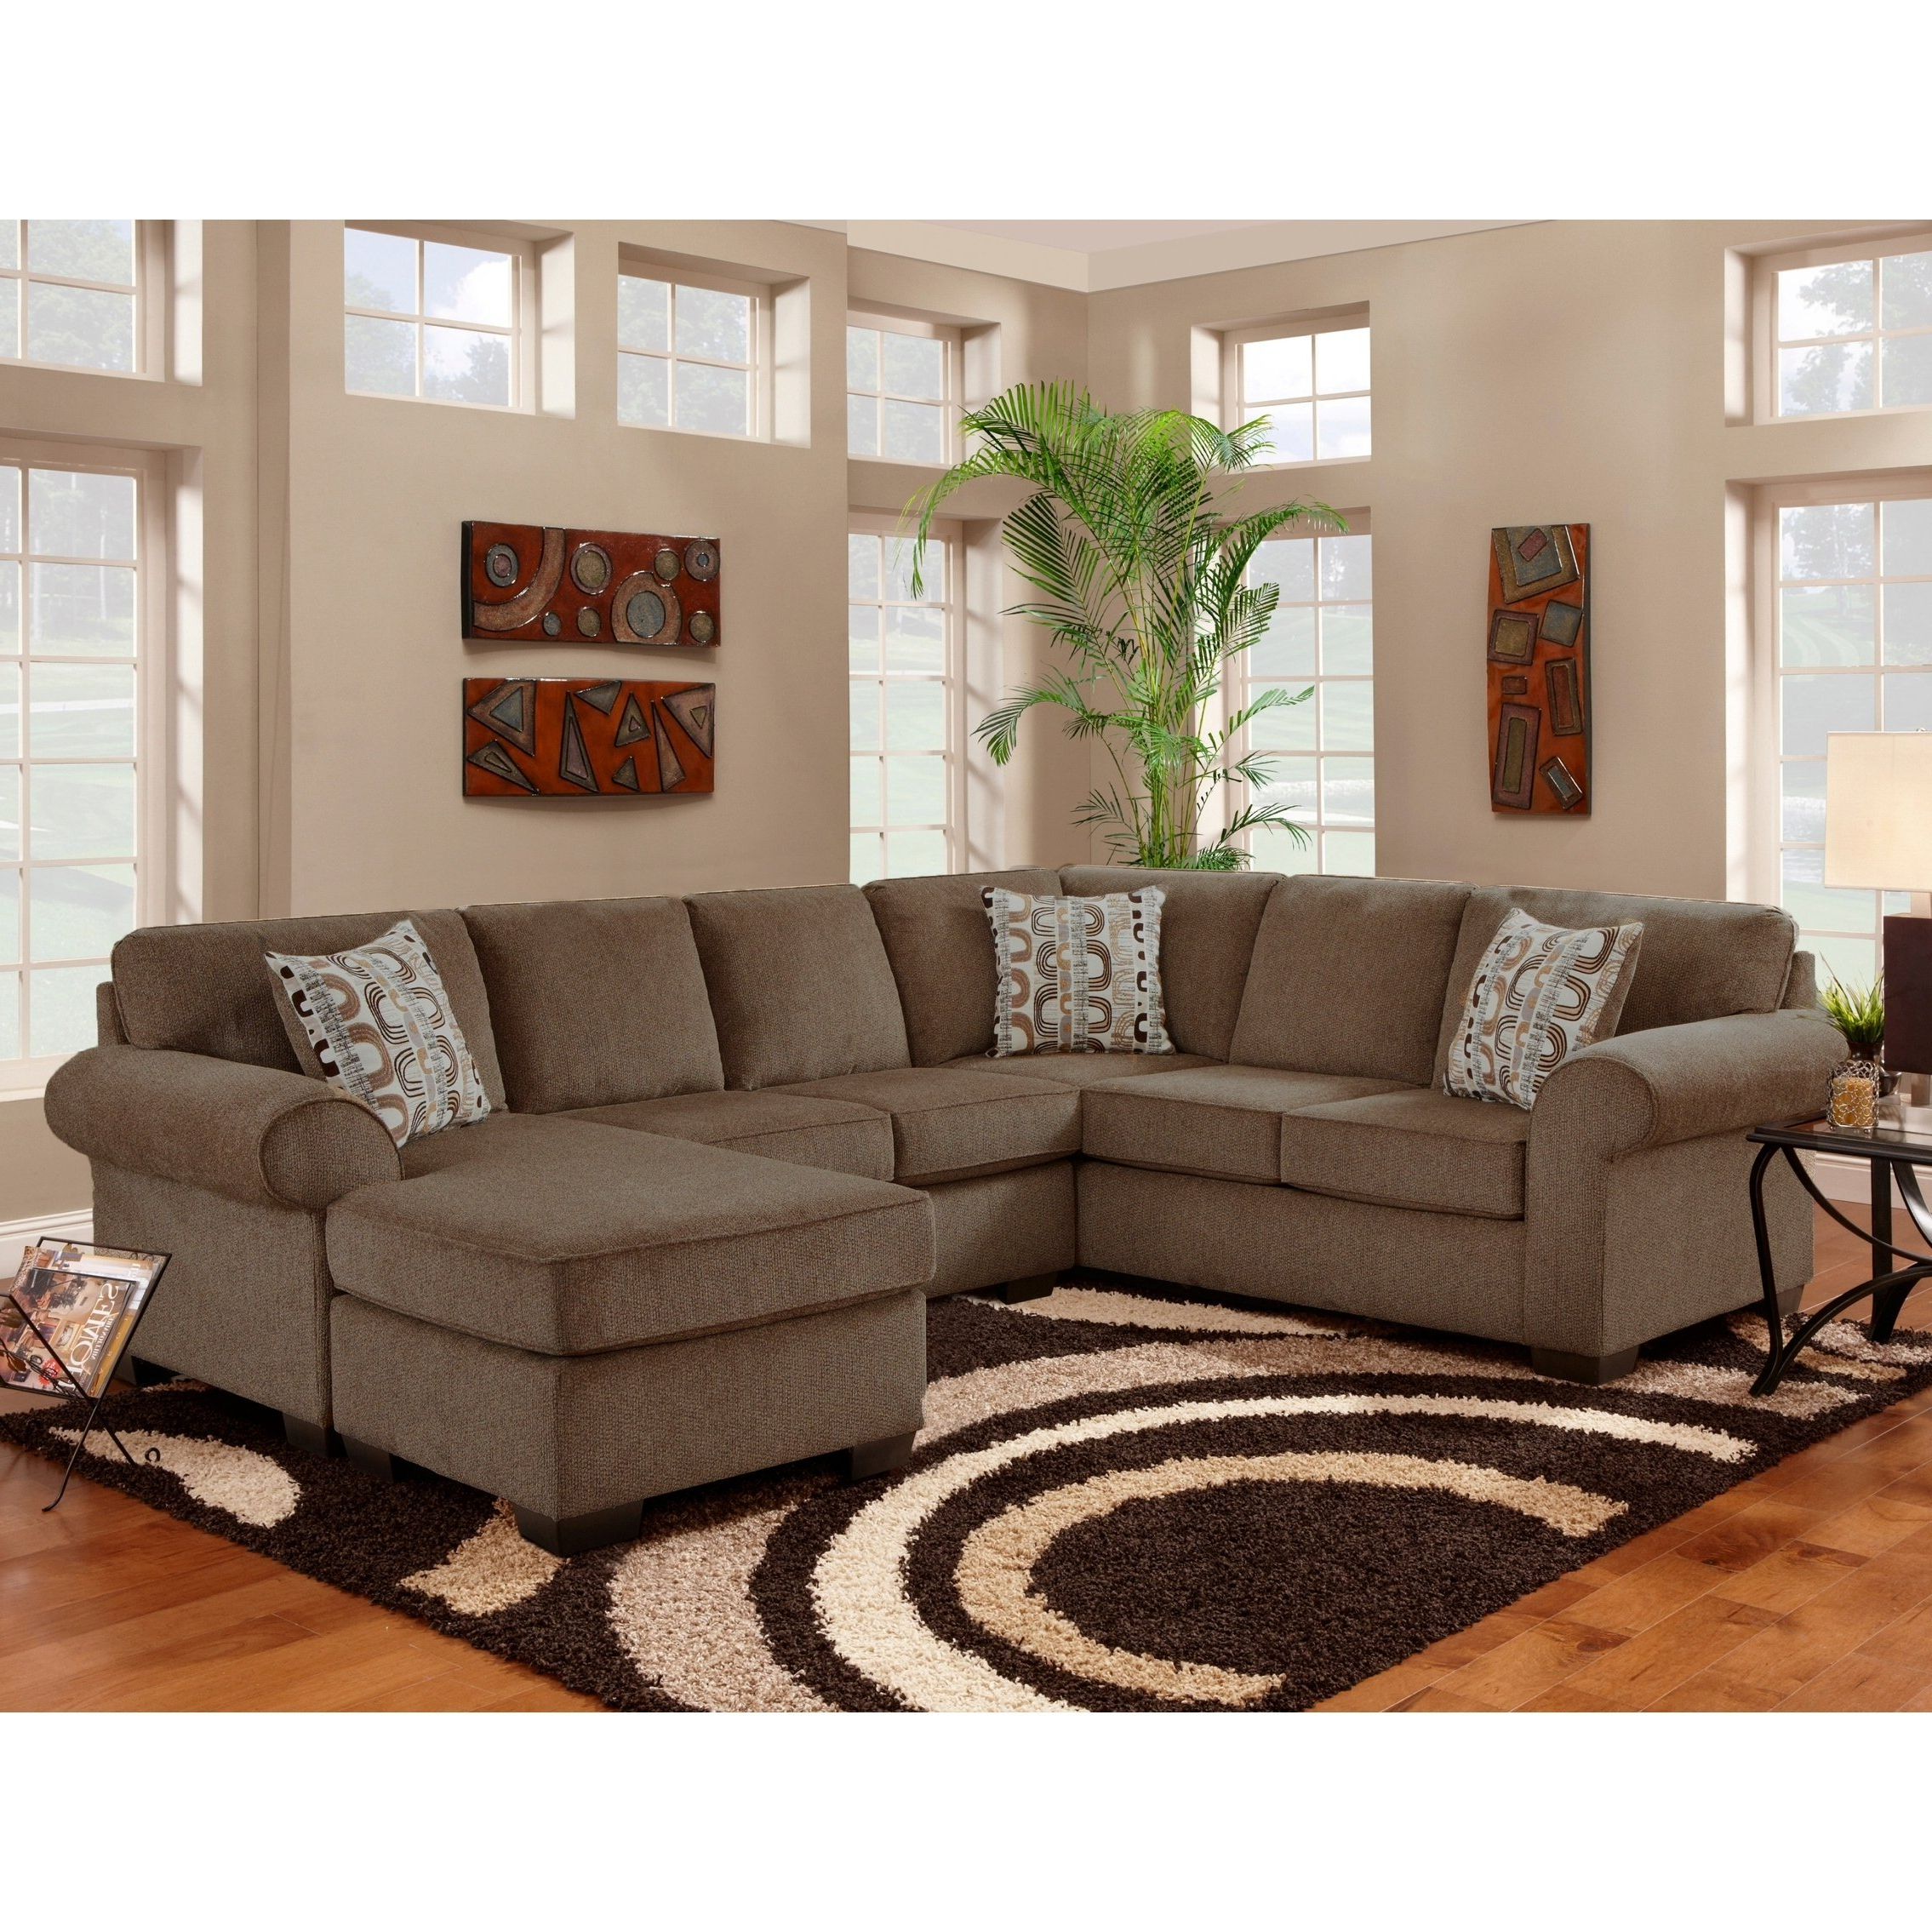 Current Alder 4 Piece Sectionals Inside Shop Clay Alder Home Chase Cobra Cocoa Sectional – Free Shipping (View 5 of 20)